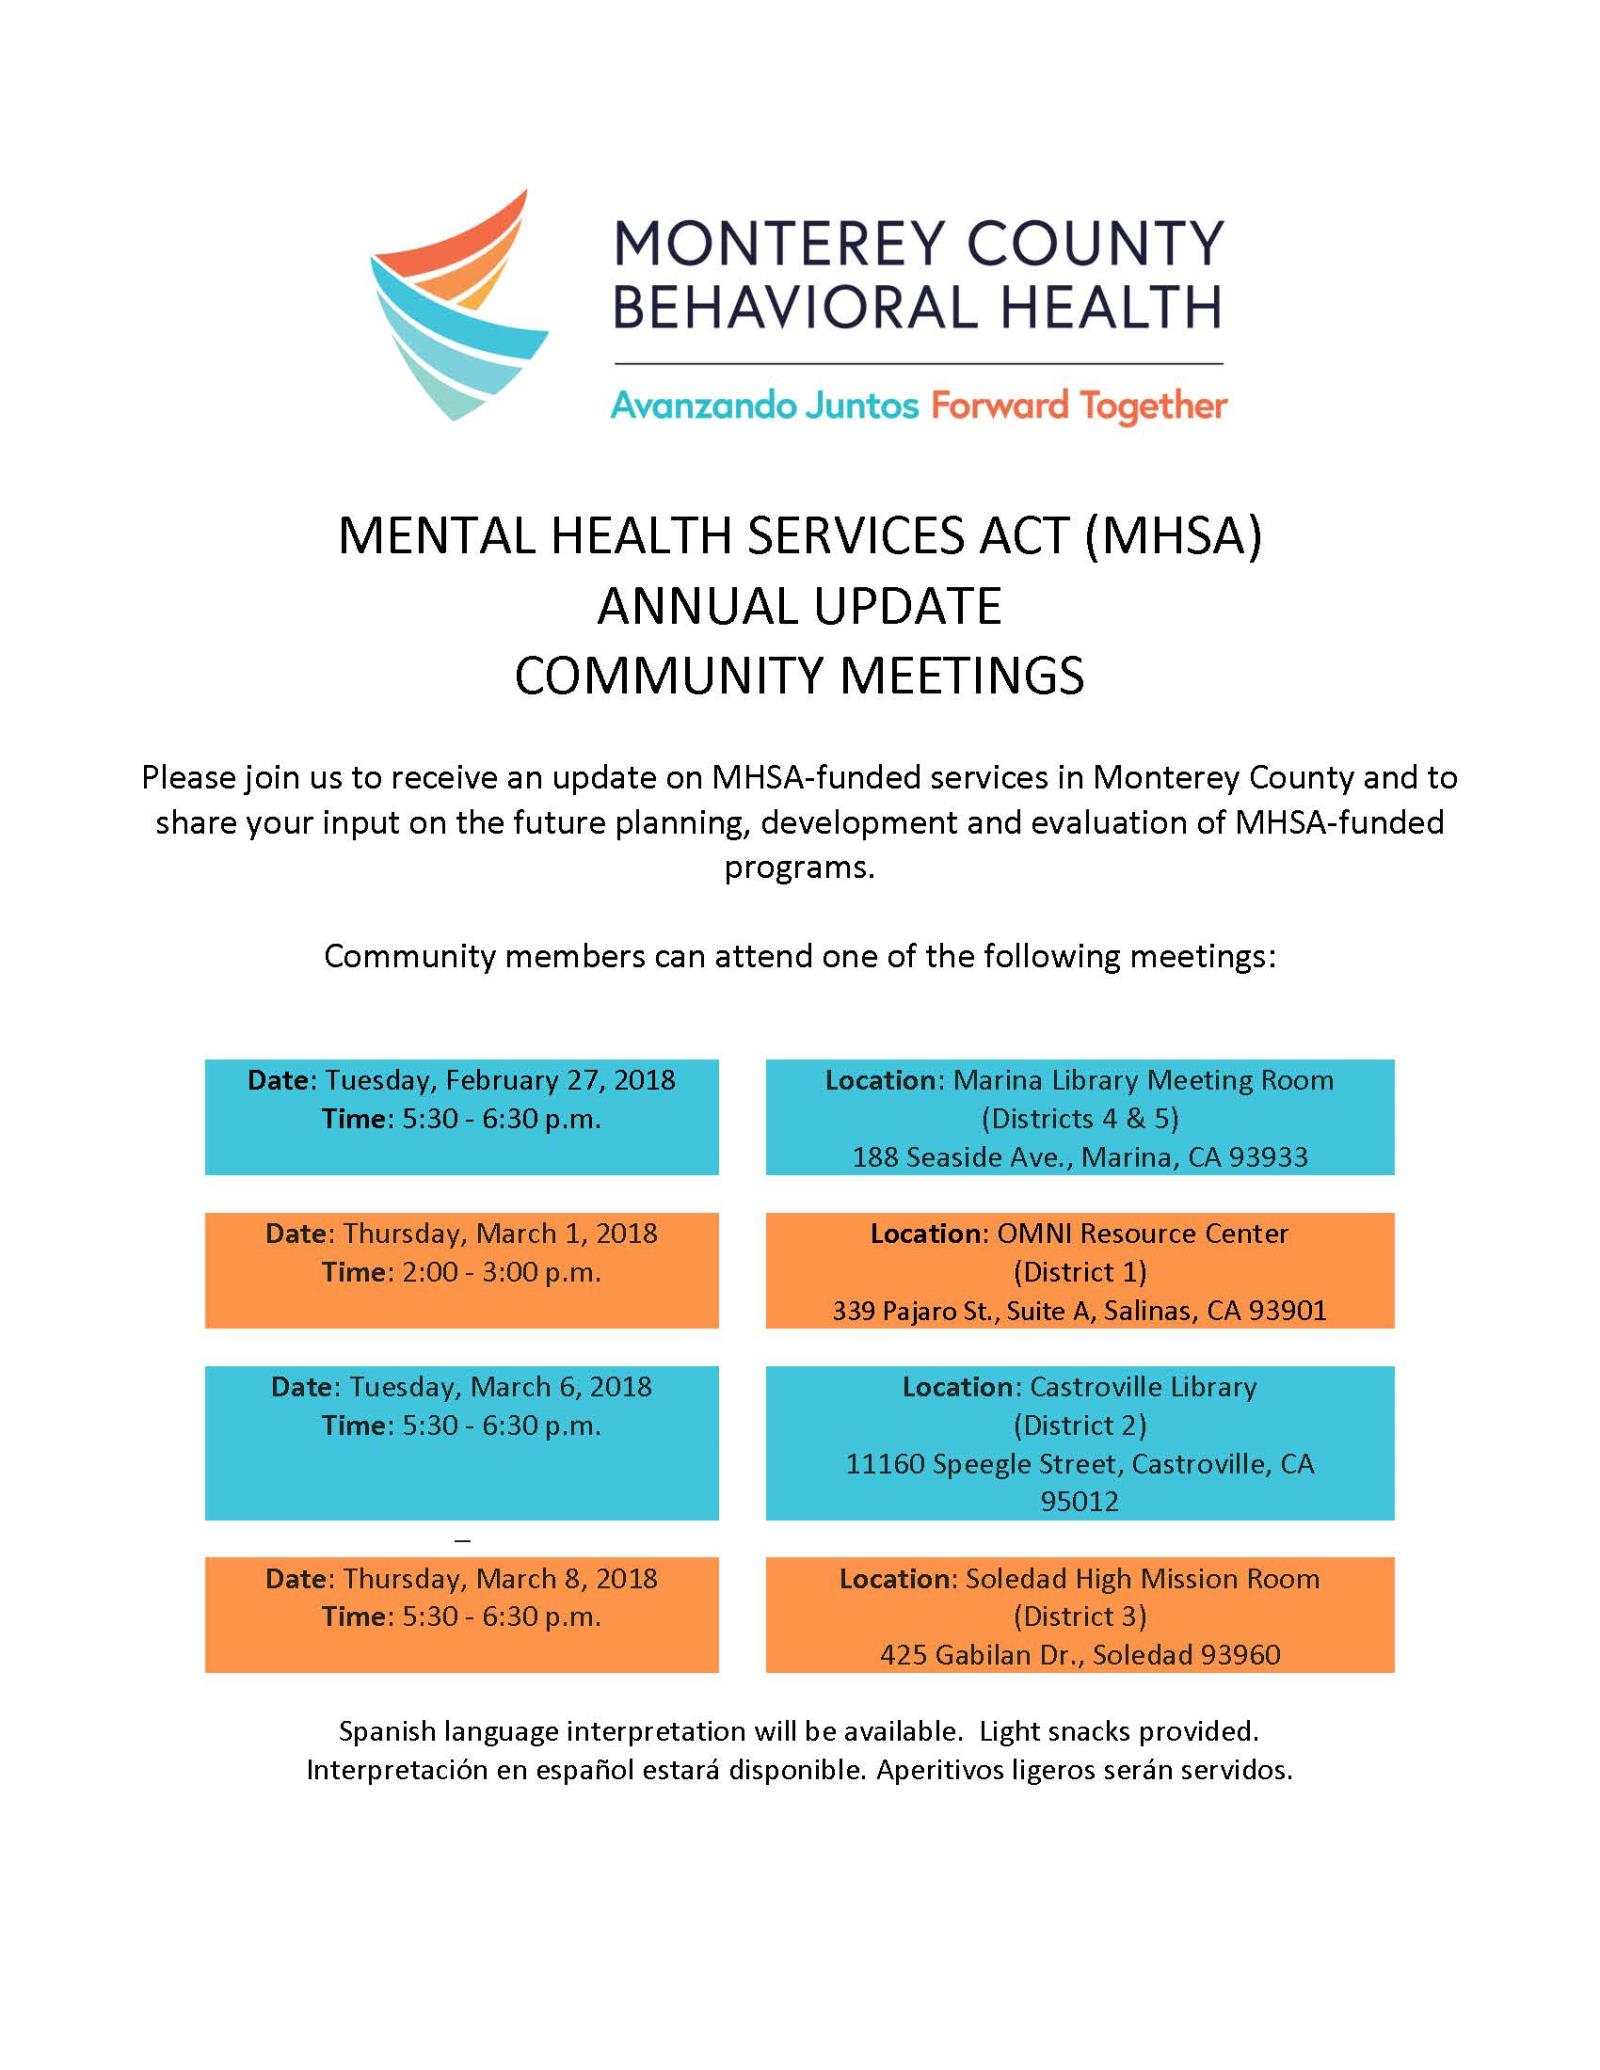 MHSA annual update mtg flyer.final.3_Page_1